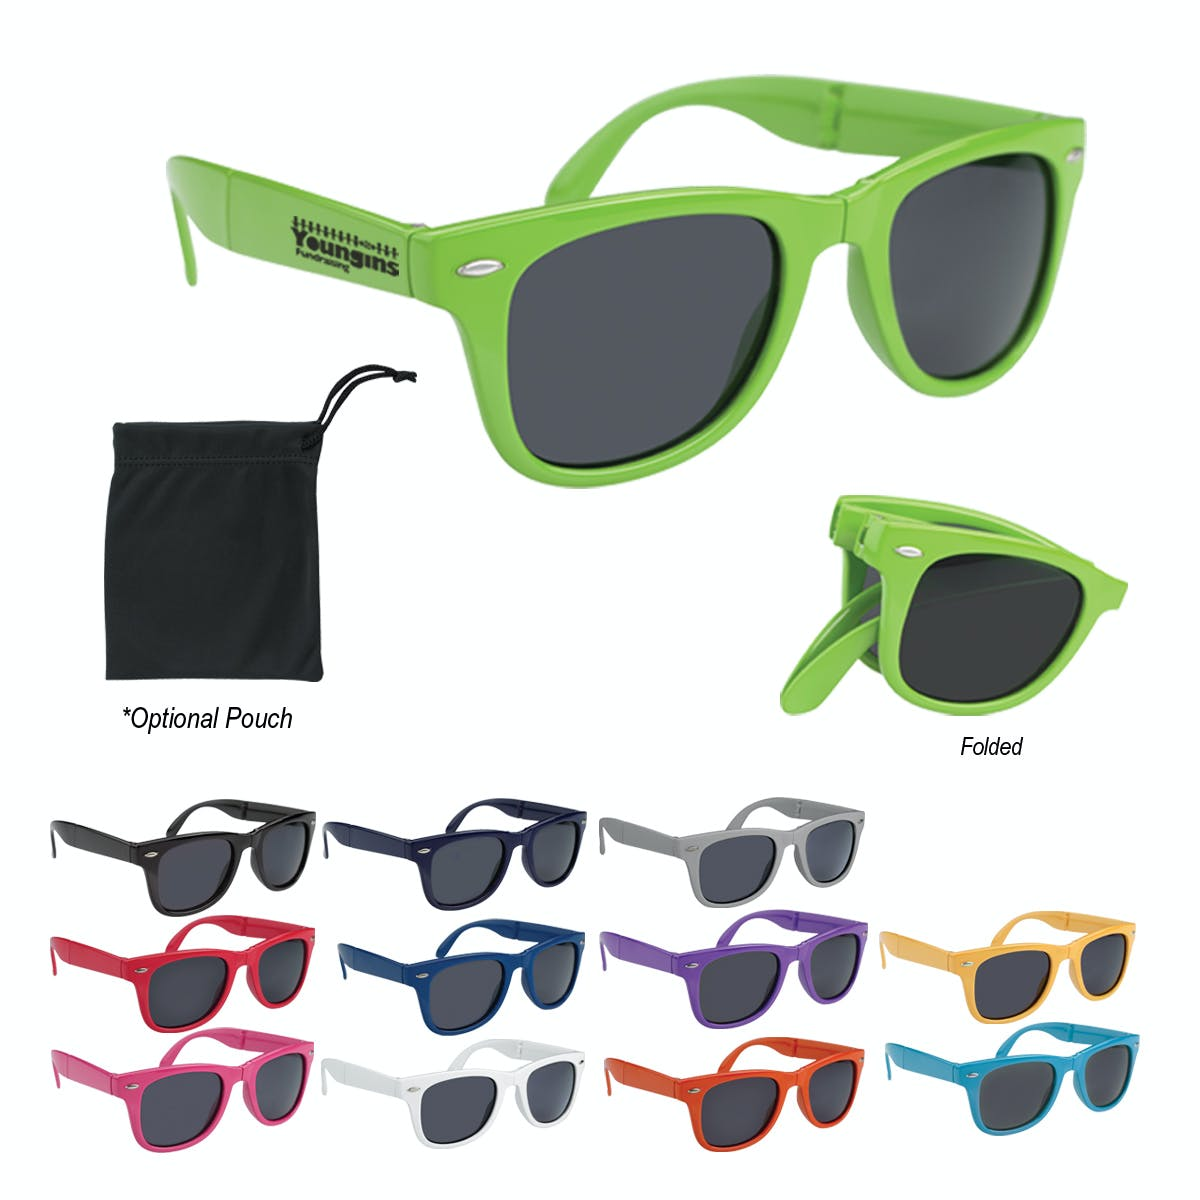 Folding Sunglasses (Item # JFFJN-ITVIQ) Custom sunglass sold by InkEasy